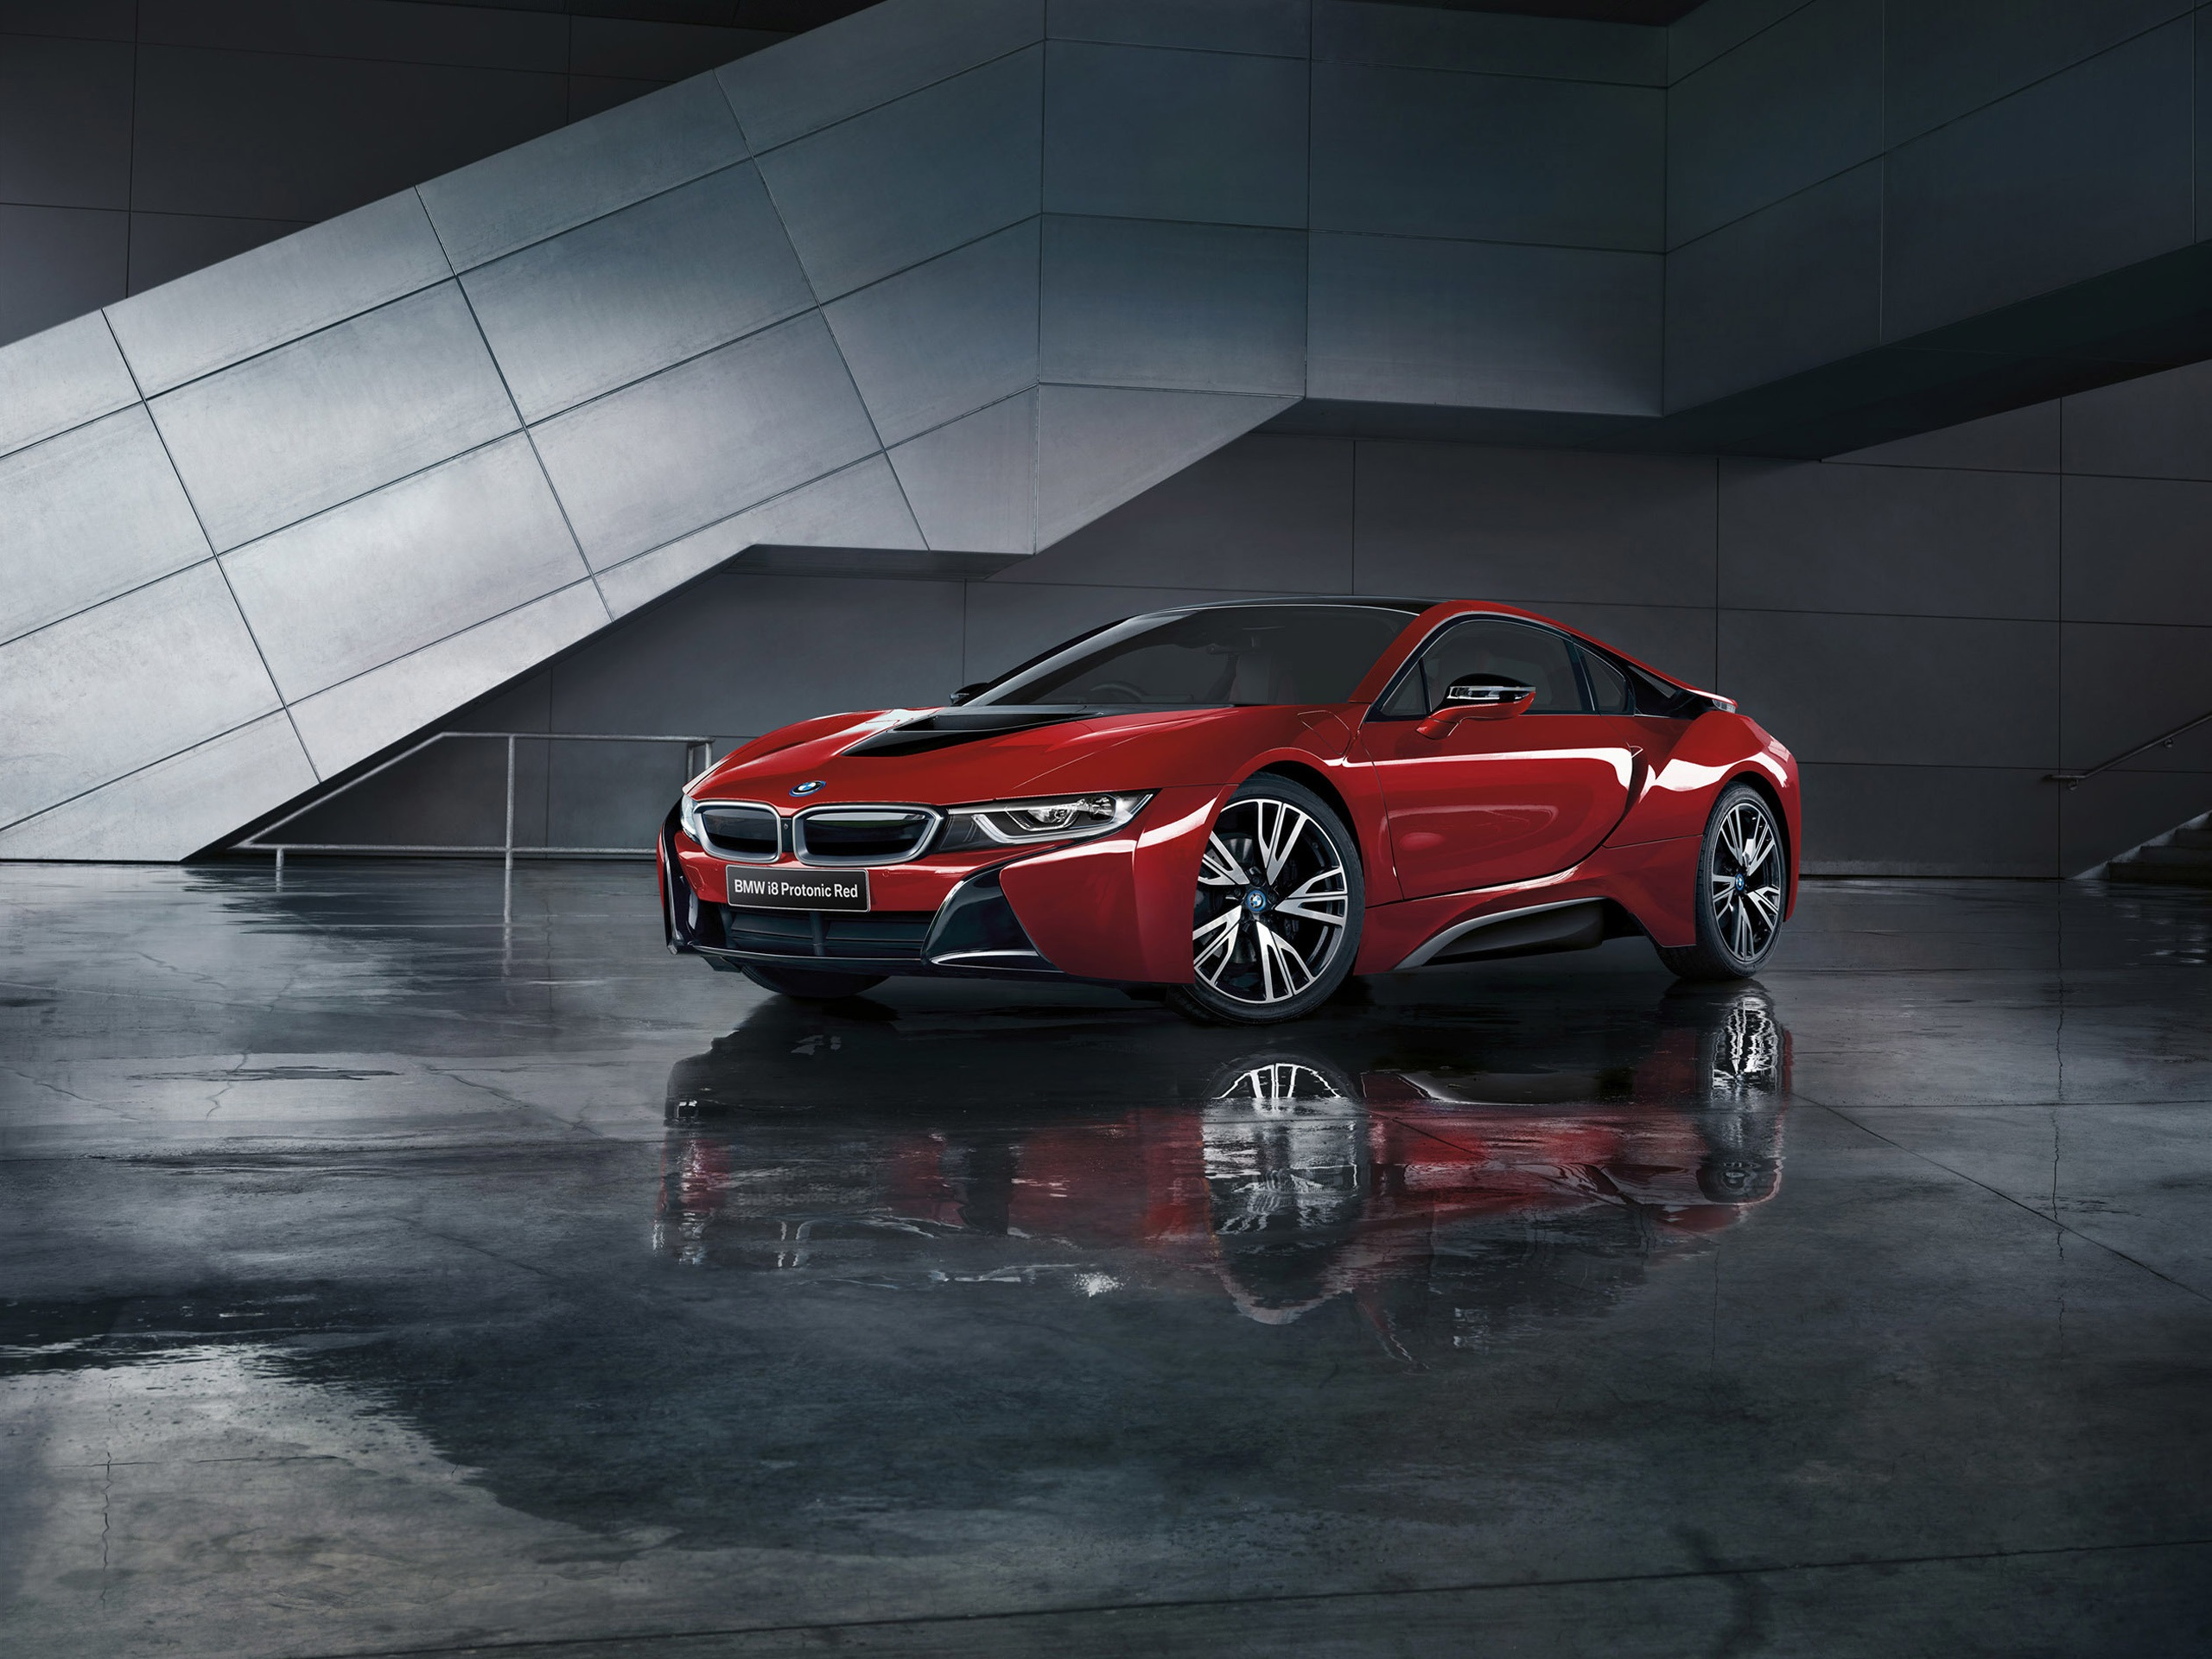 Wallpaper Bmw I8 Protonic Red Car 2560x1920 Hd Picture Image